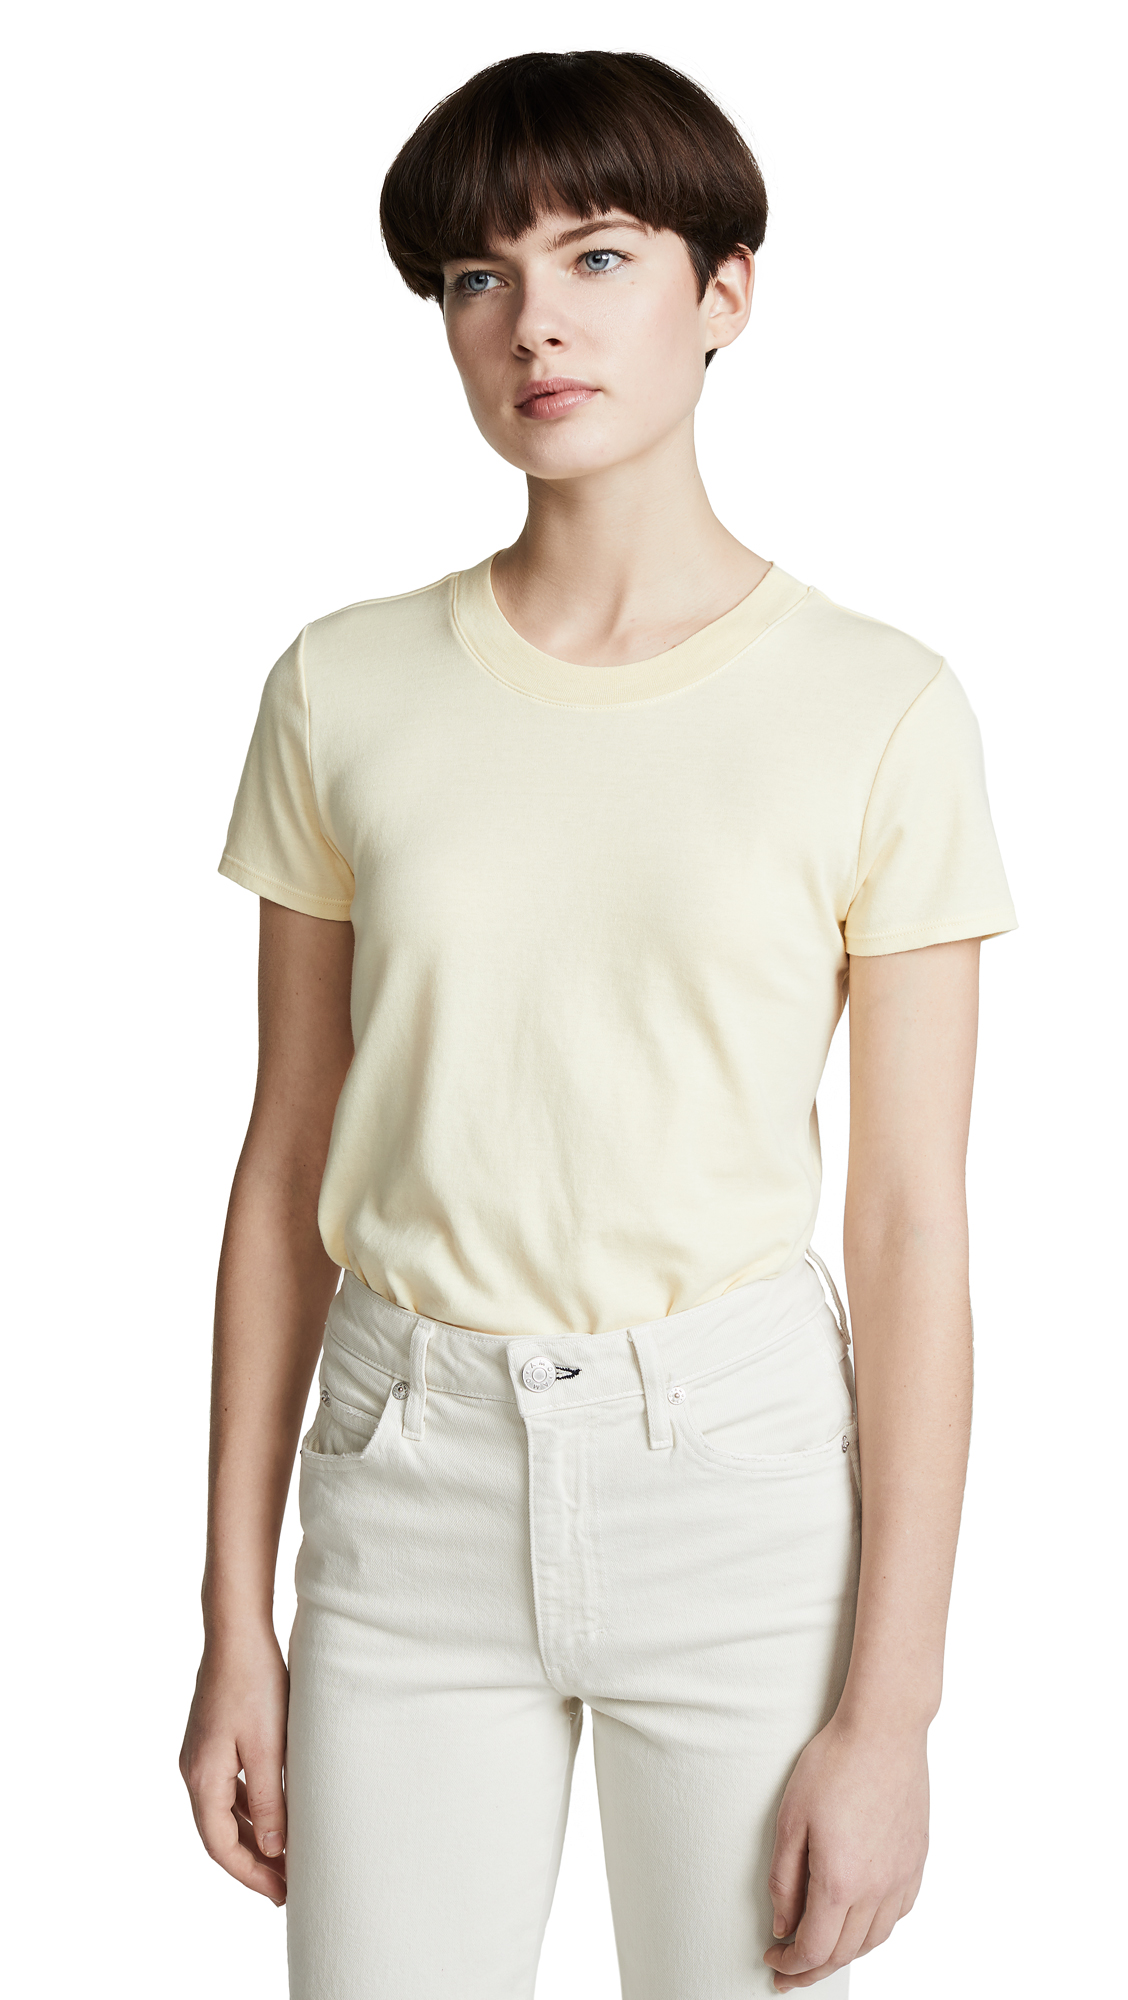 Enza Costa Classic Short Sleeve Tee - Pale Yellow